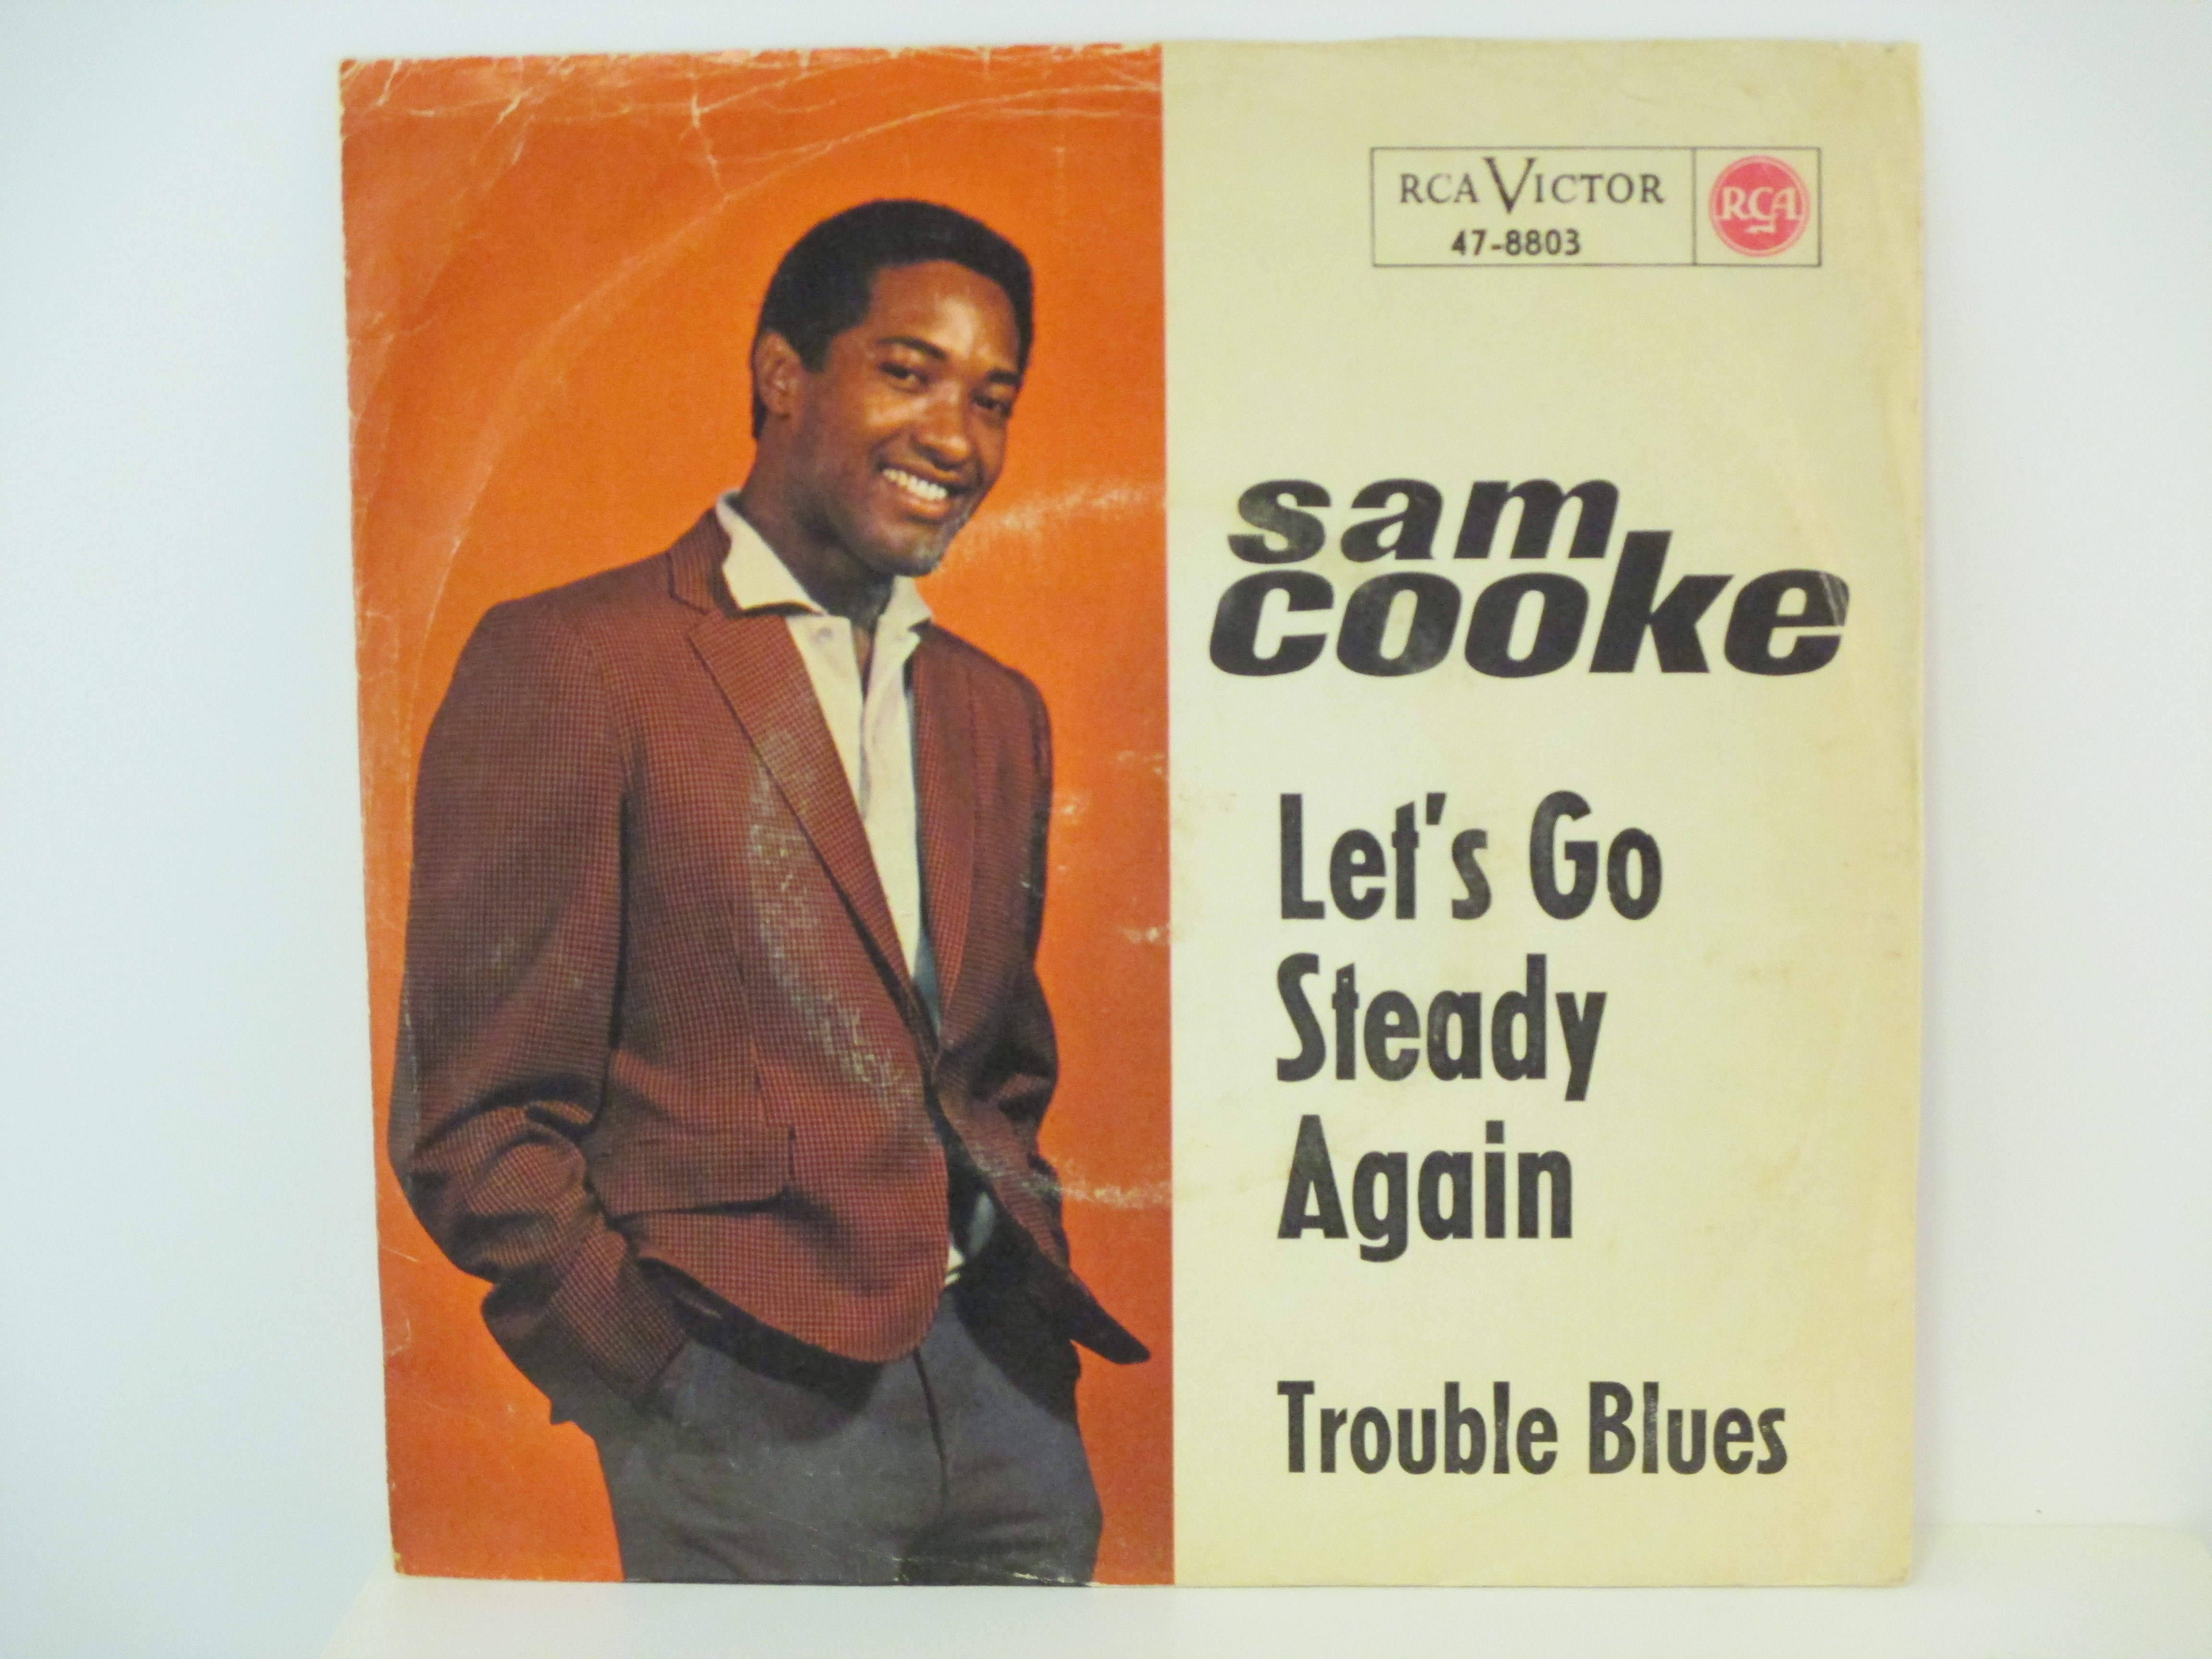 SAM COOKE : Let's go steady again / Trouble blues